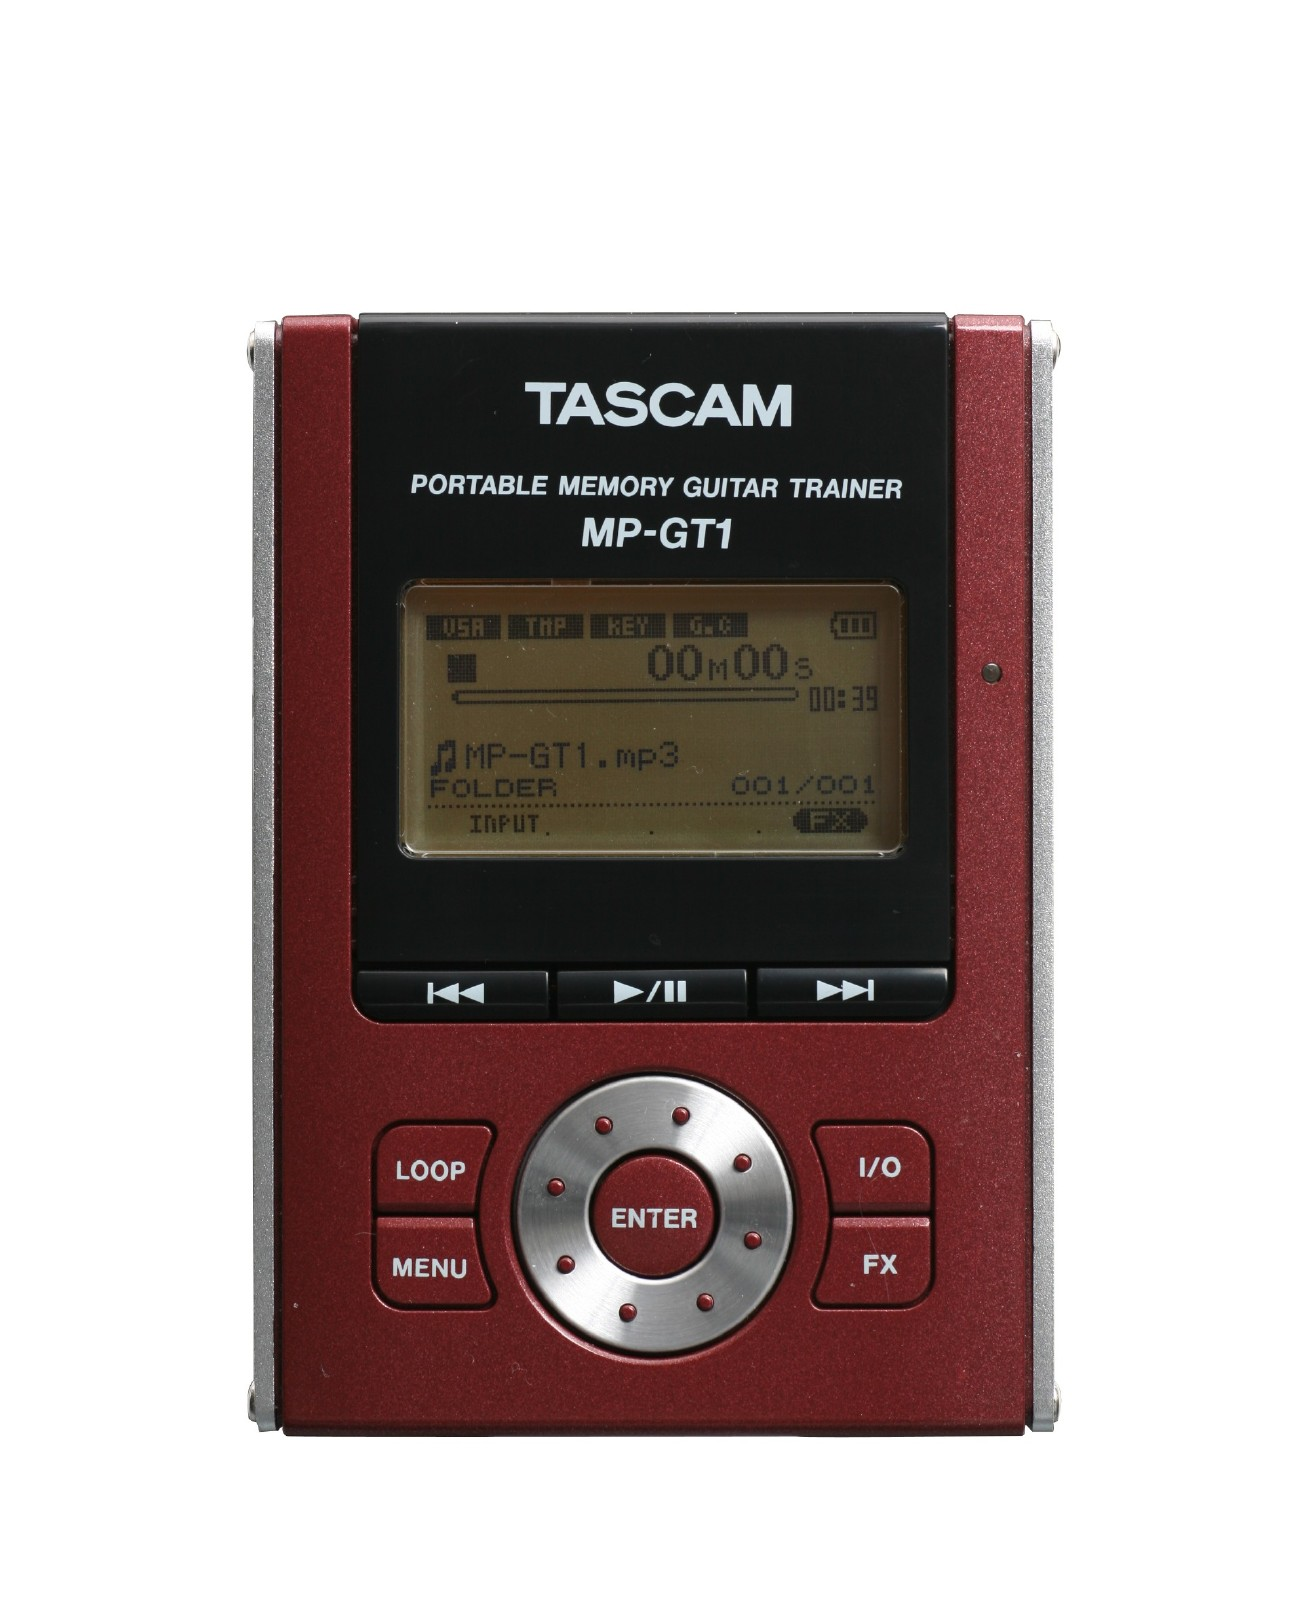 MP-GT1 | FEATURES | TASCAM - United States